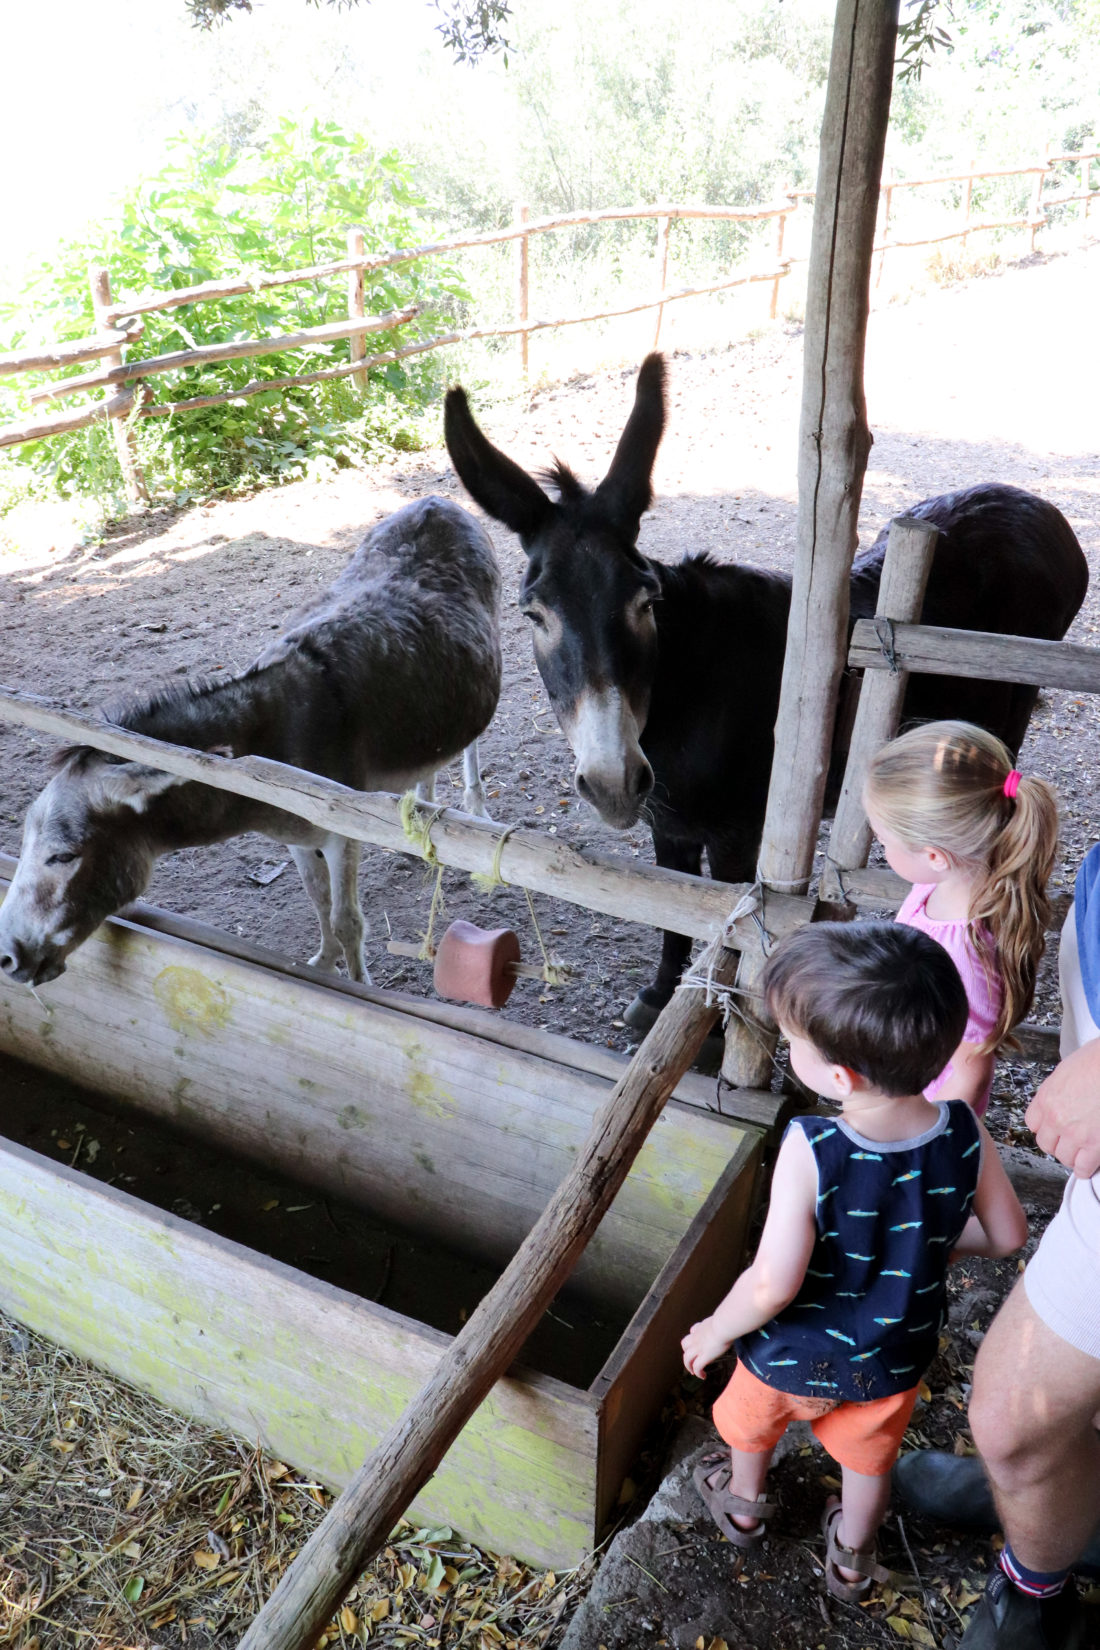 Eva Amurri Martino's children Marlowe and Major pet donkeys in the Amalfi Coast